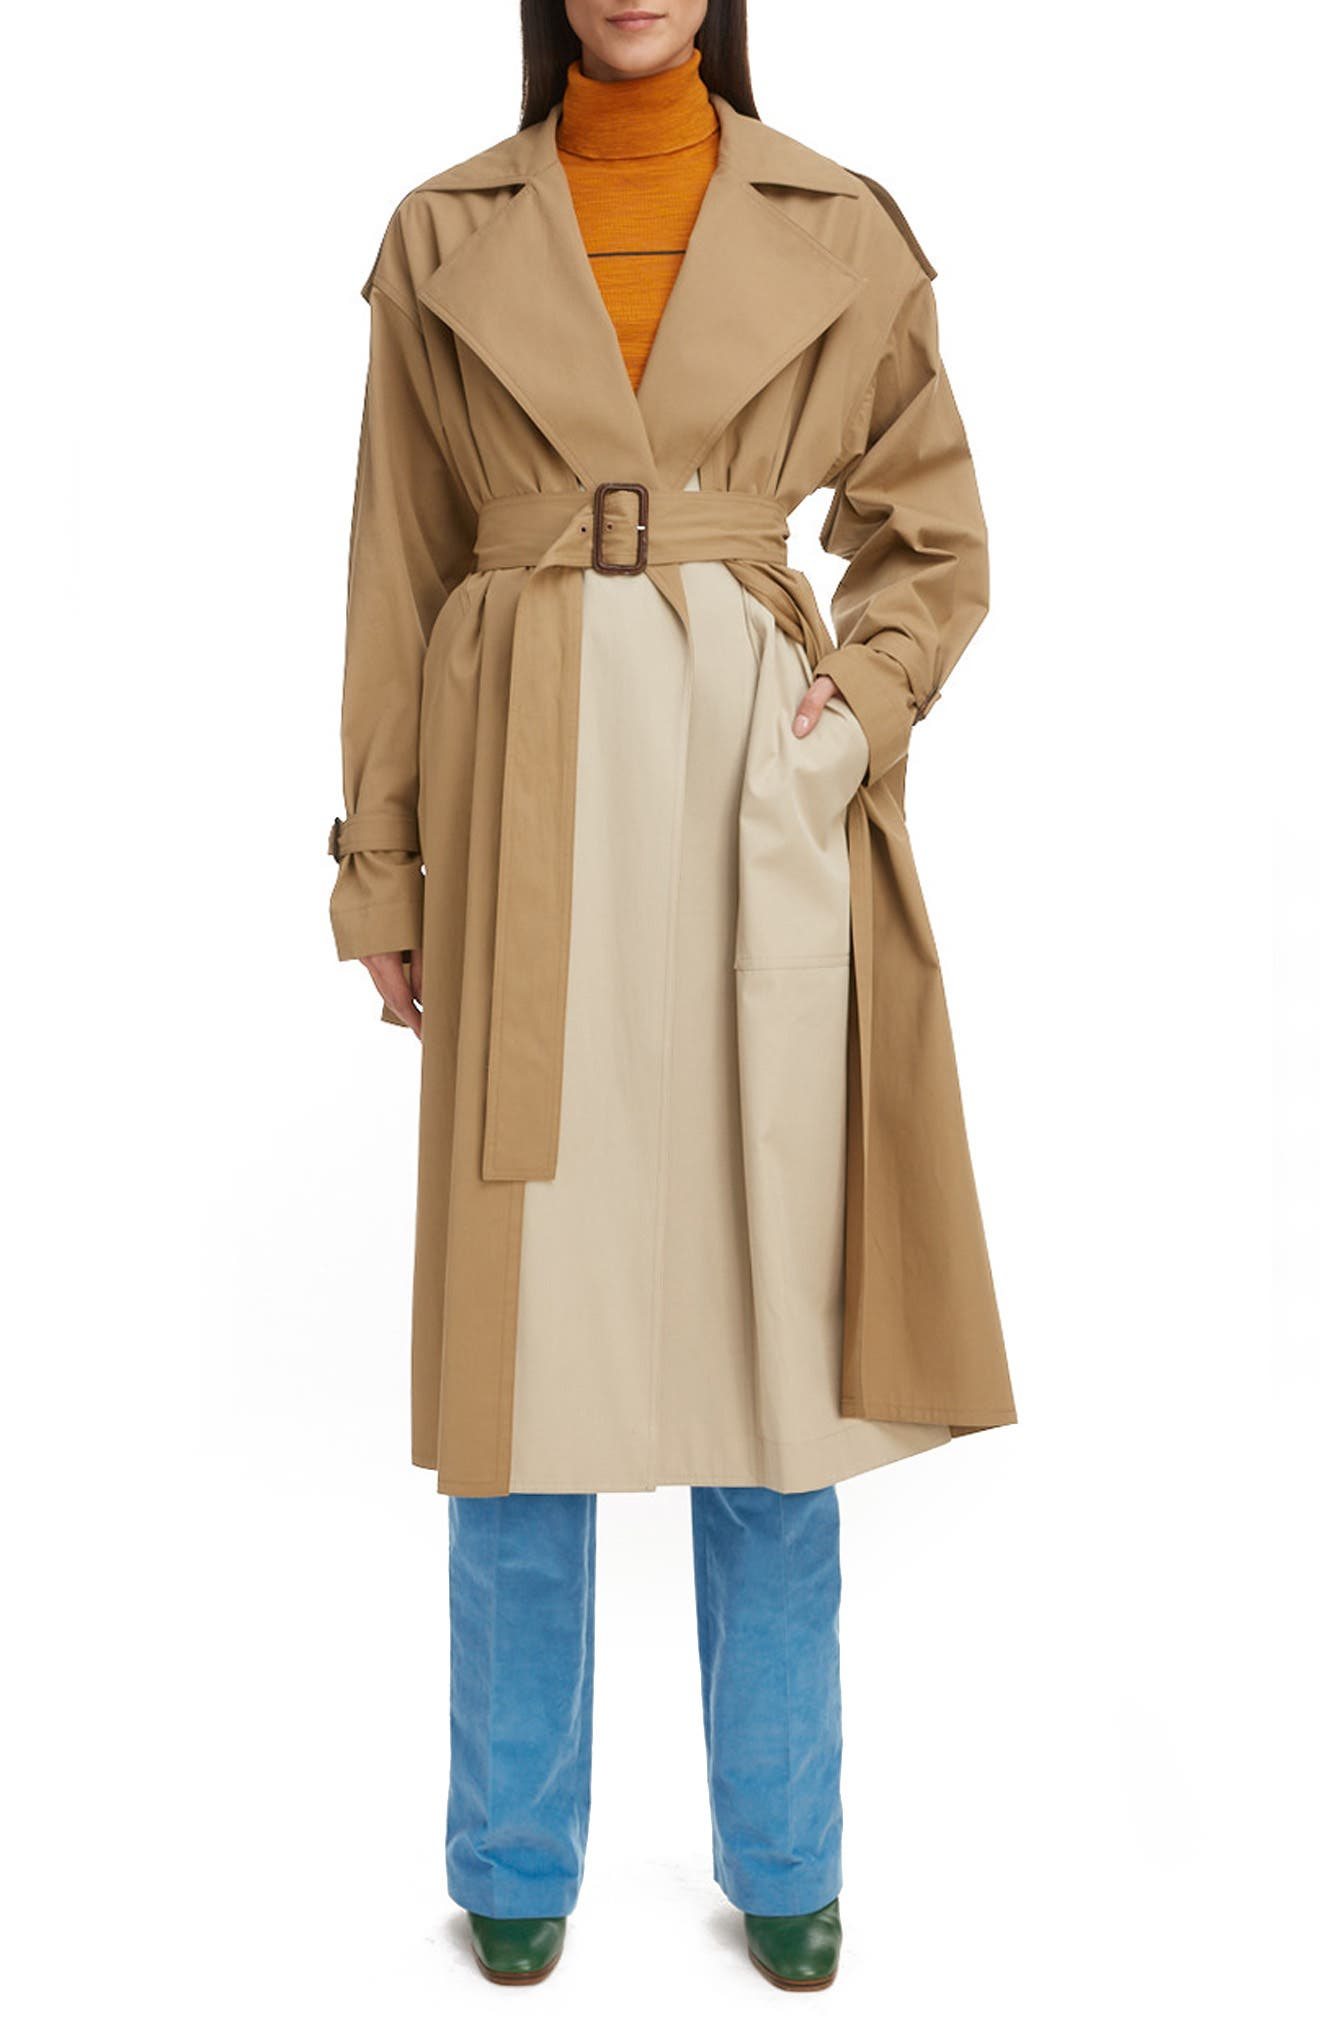 A brighter block of neutral color lends a mod touch to this swingy cotton trench designed with exaggerated details that impart a chic, easy vibe. Style Name: Victoria Beckham Trench Coat. Style Number: 6078074. Available in stores.